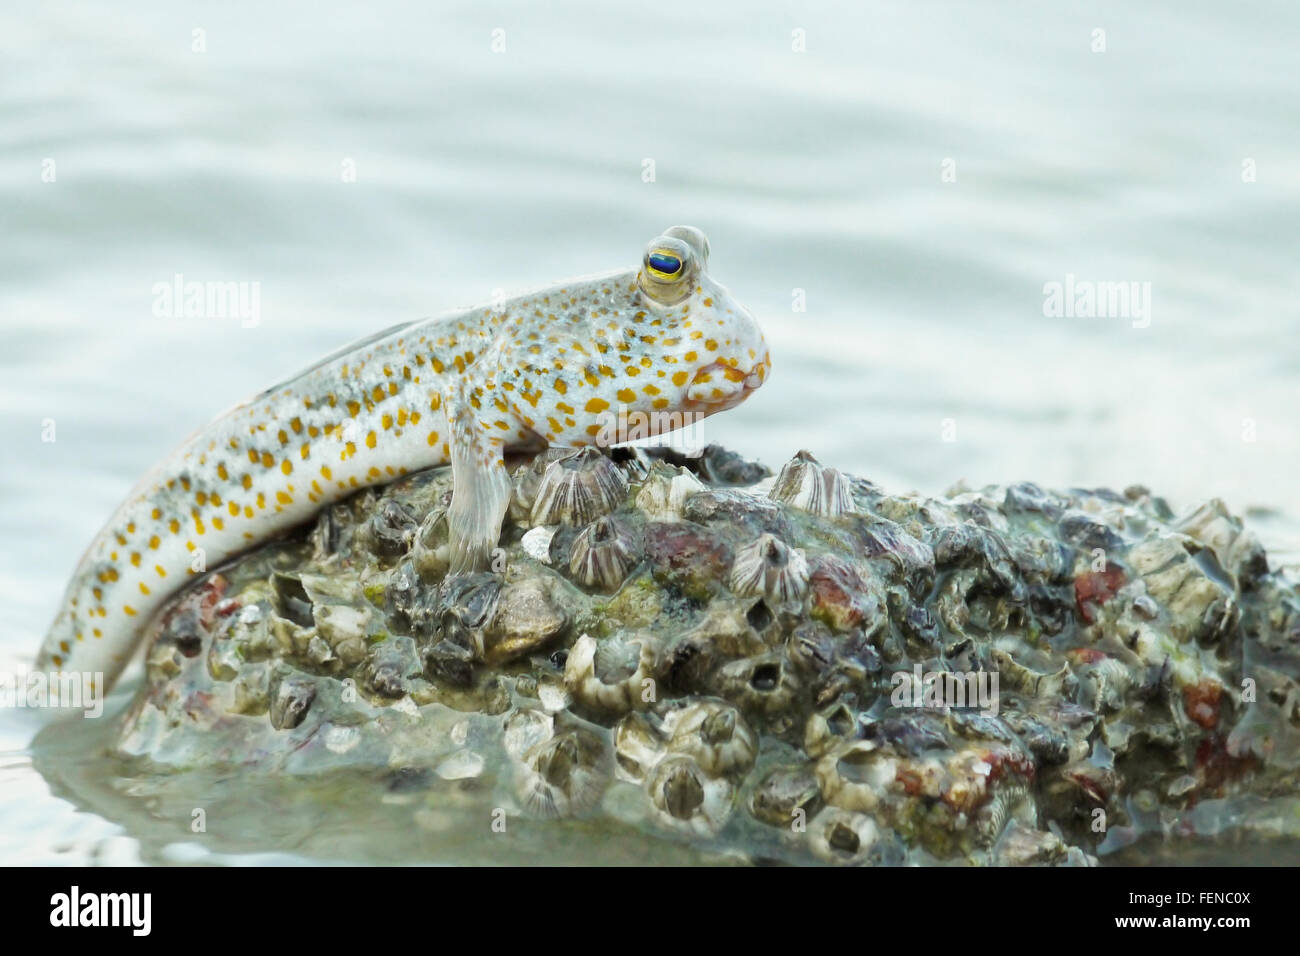 Portrait of a Gold Spotted Mud Skipper - Stock Image